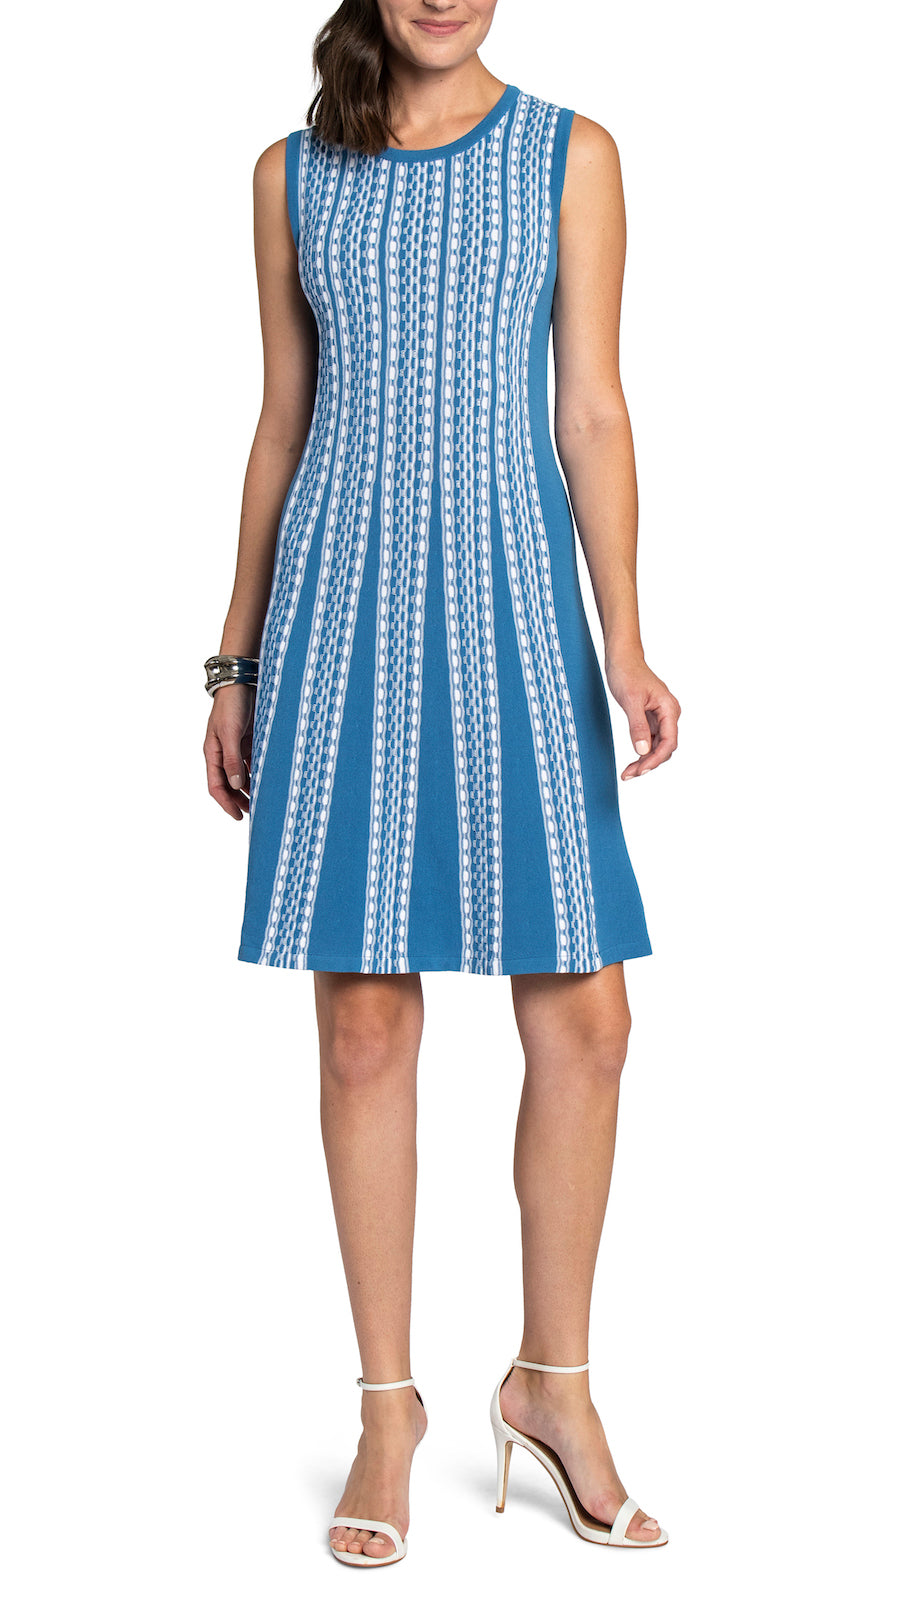 CONTEMPO Thyra Fit and Flare Dress, Sky Blue/White